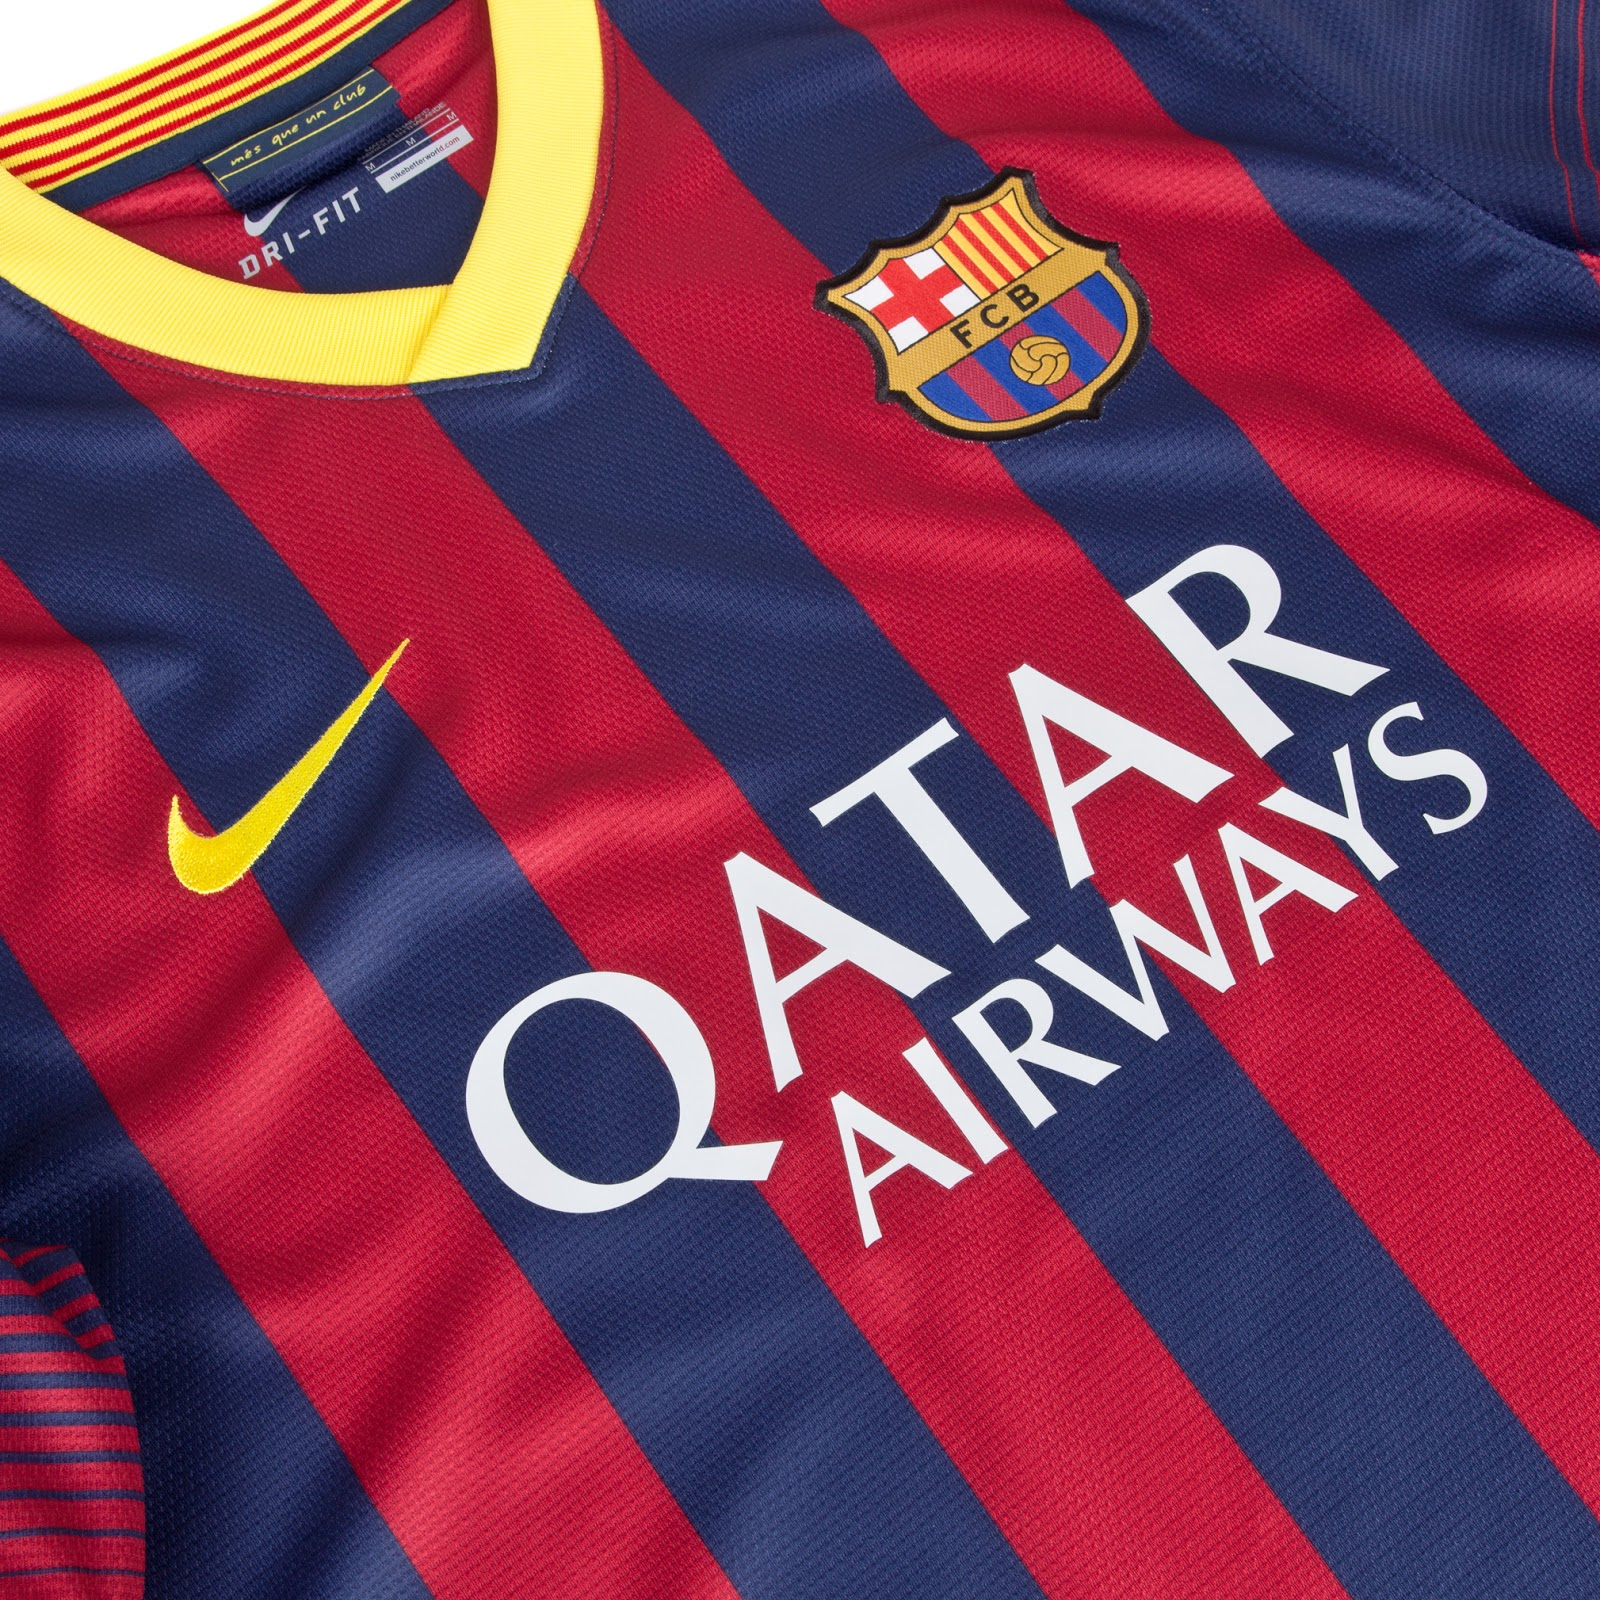 4c783caf7fb The Barcelona Home Kit features four red stripes and five blue stripes on  the front as well as stripes on the sleeve cuffs creating a transition  effect.